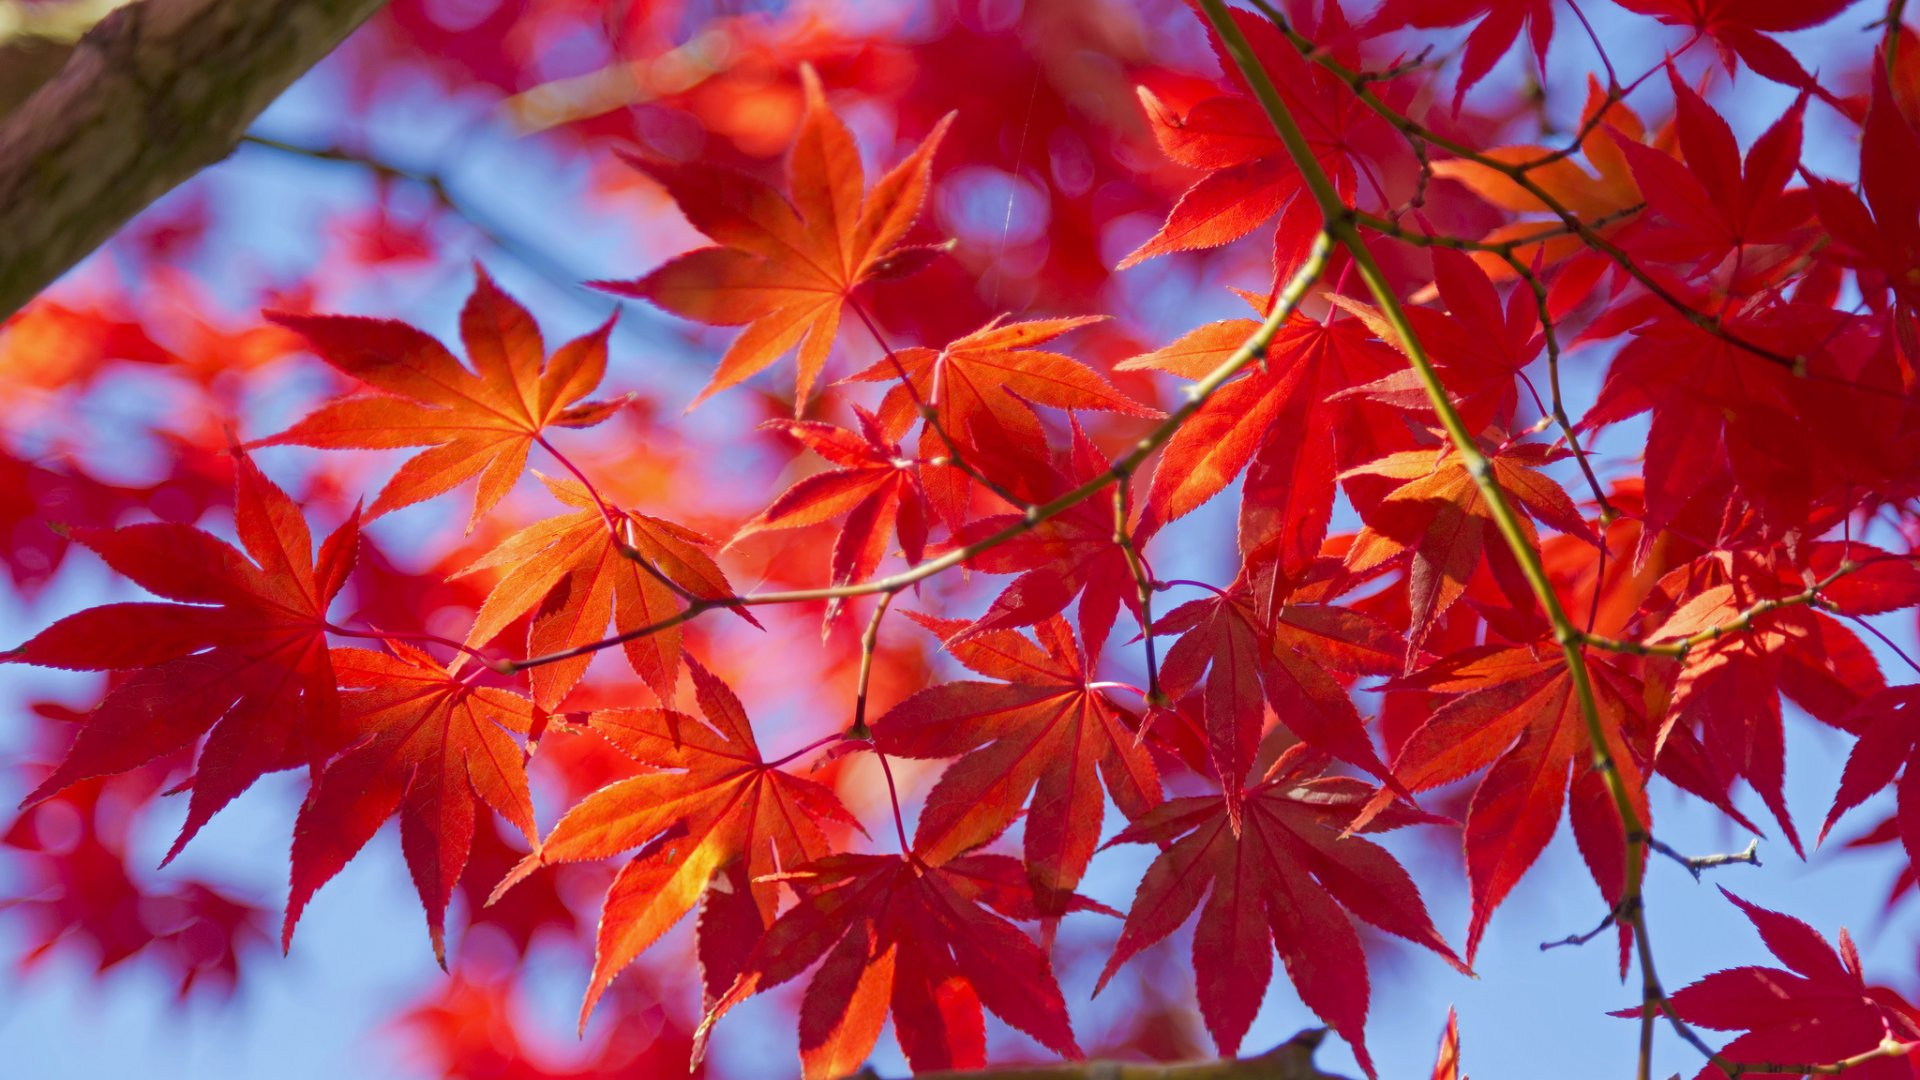 Fall Leaves Hd Wallpaper Red Leaves Tree Wallpapers High Quality Download Free